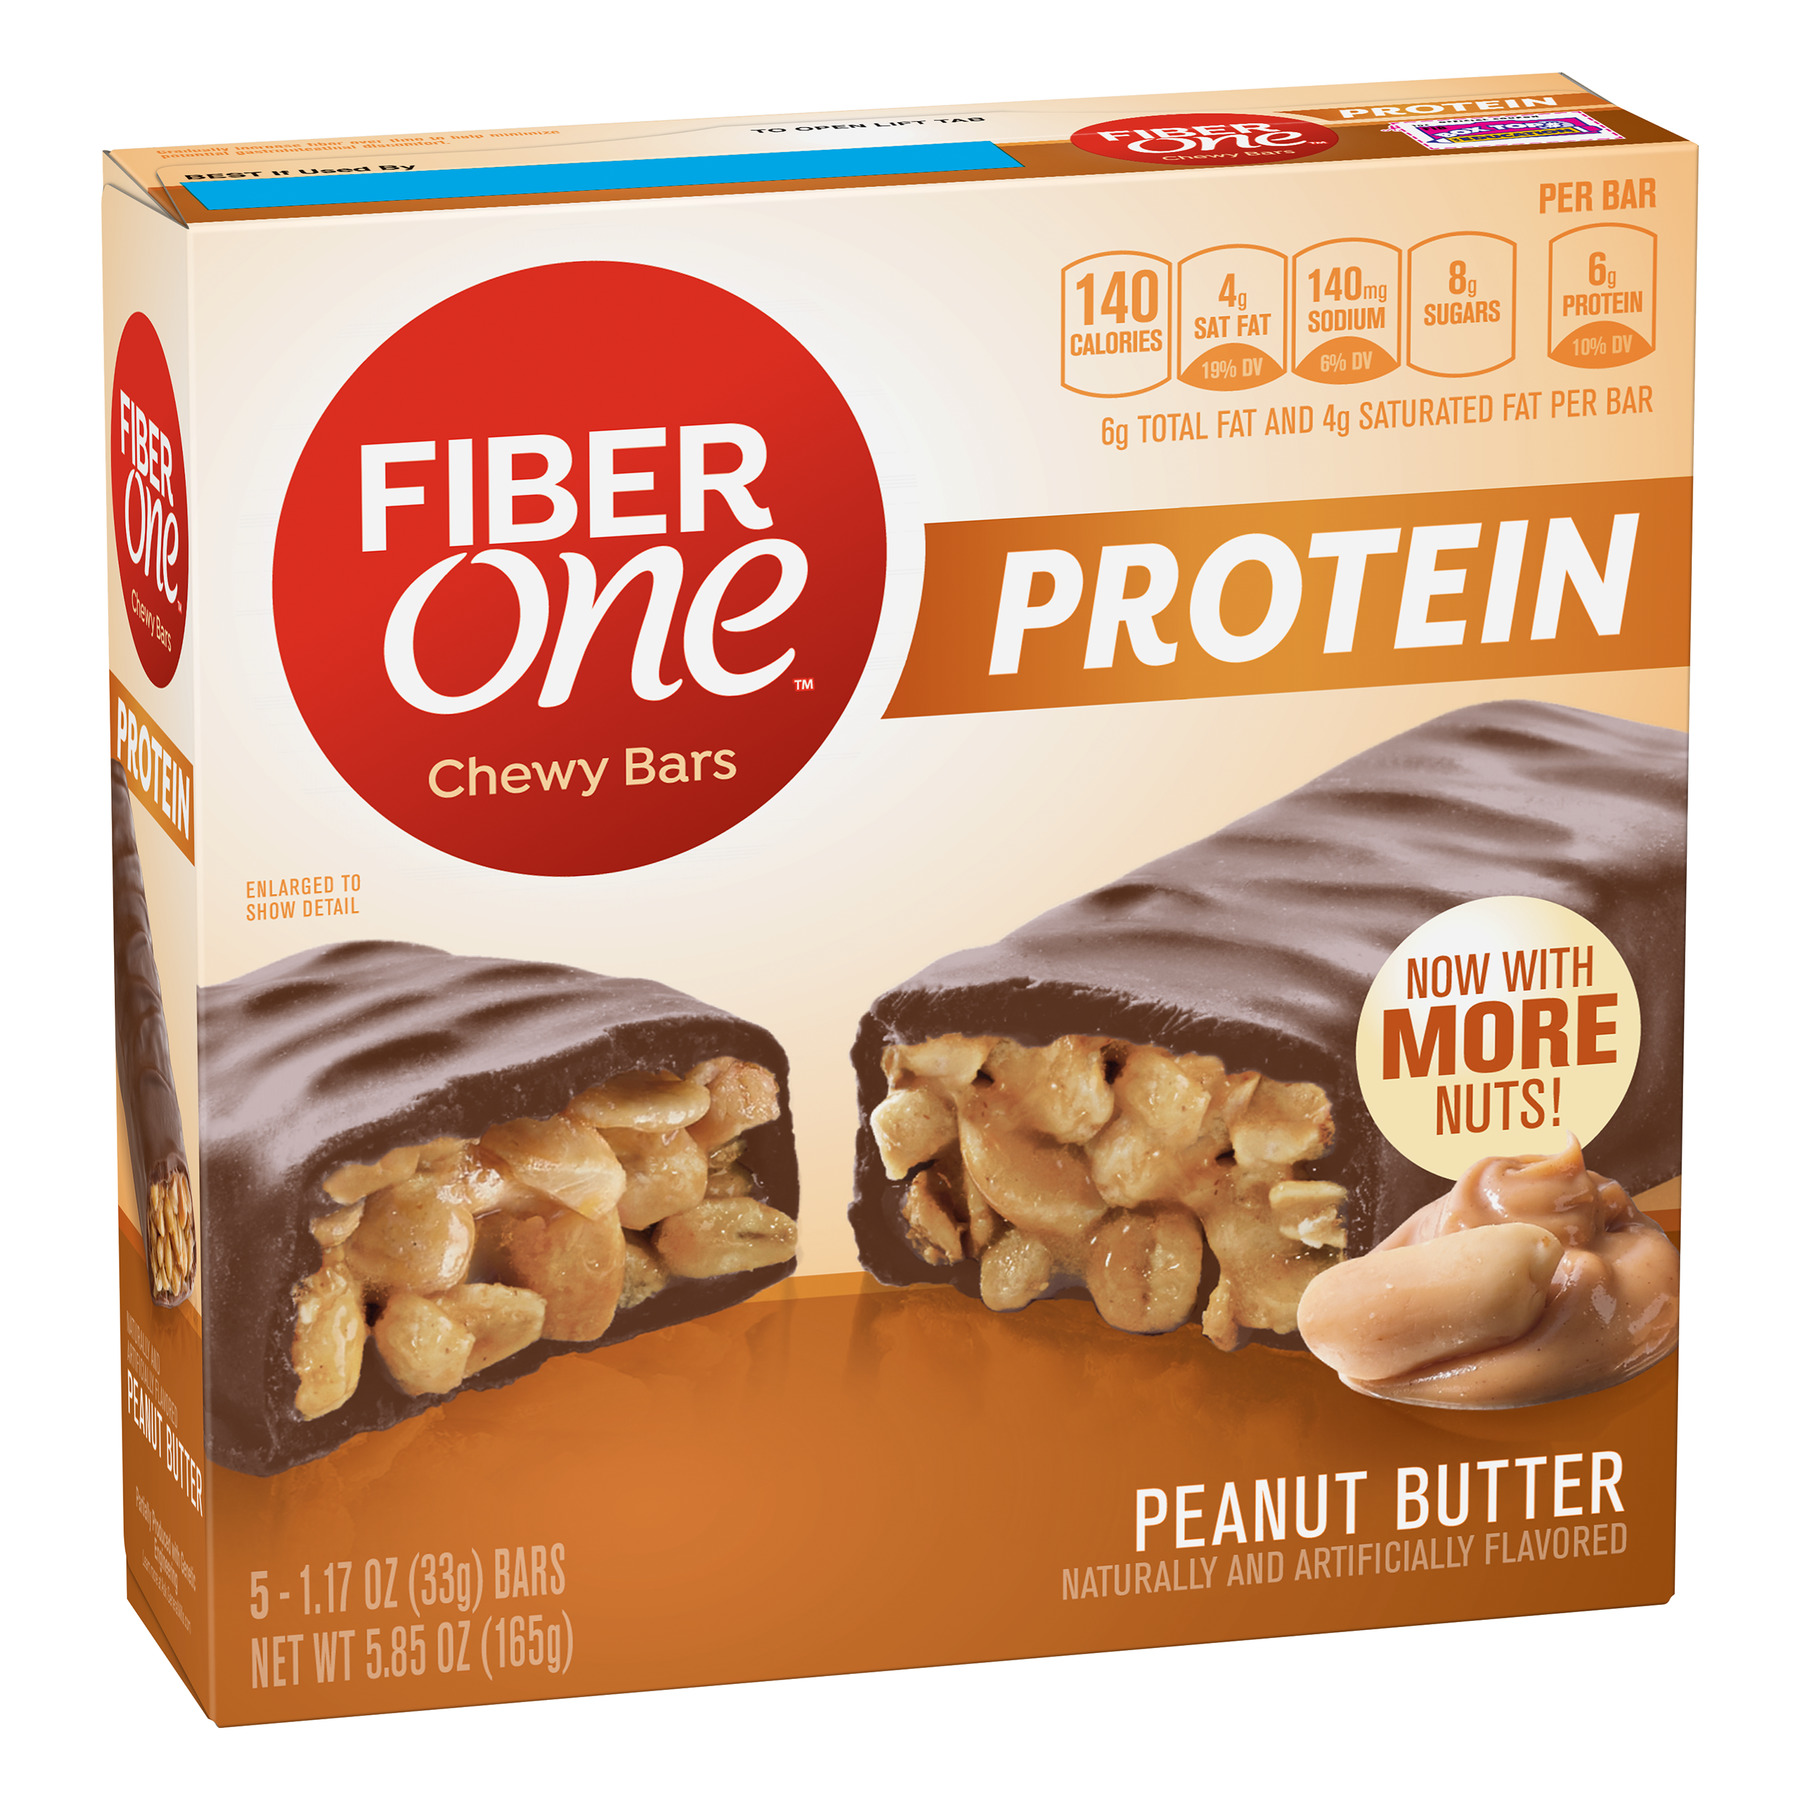 Calories, carbs, fat, protein, fiber, cholesterol, and more for Fiber One Protein Bar (Caramel Nut - General Mills). Want to use it in a meal plan? Head to the diet generator and enter the .